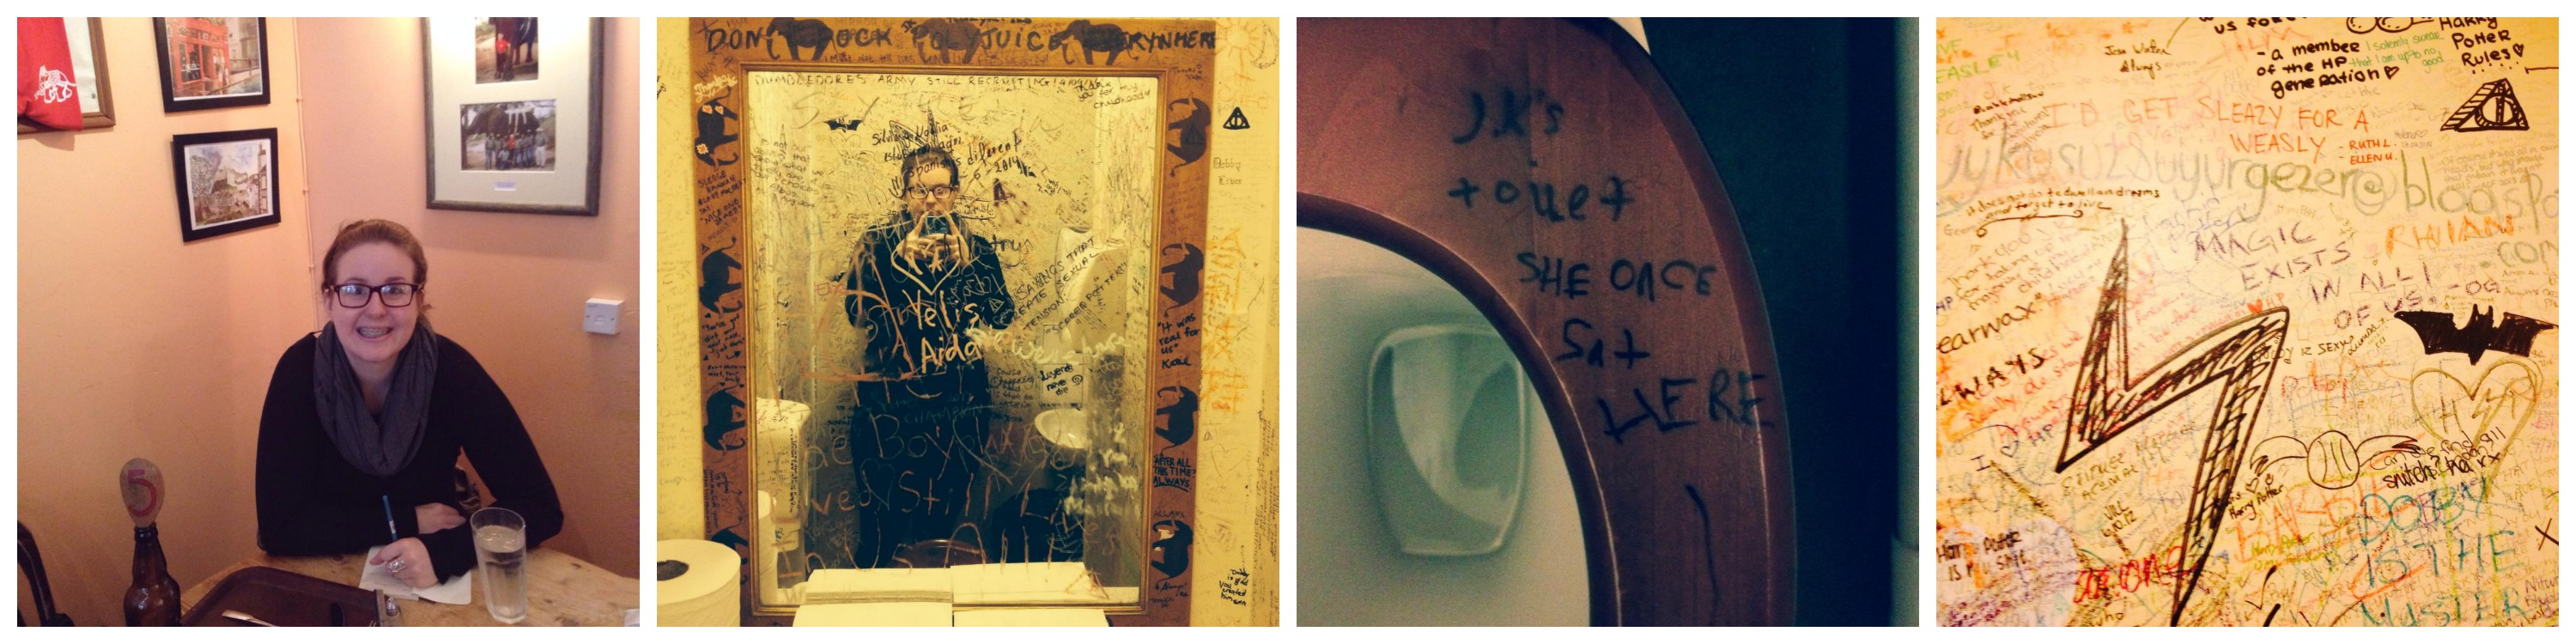 Here I am being a pretentious writer at the Elephant House Cafe and then here is the female bathroom.